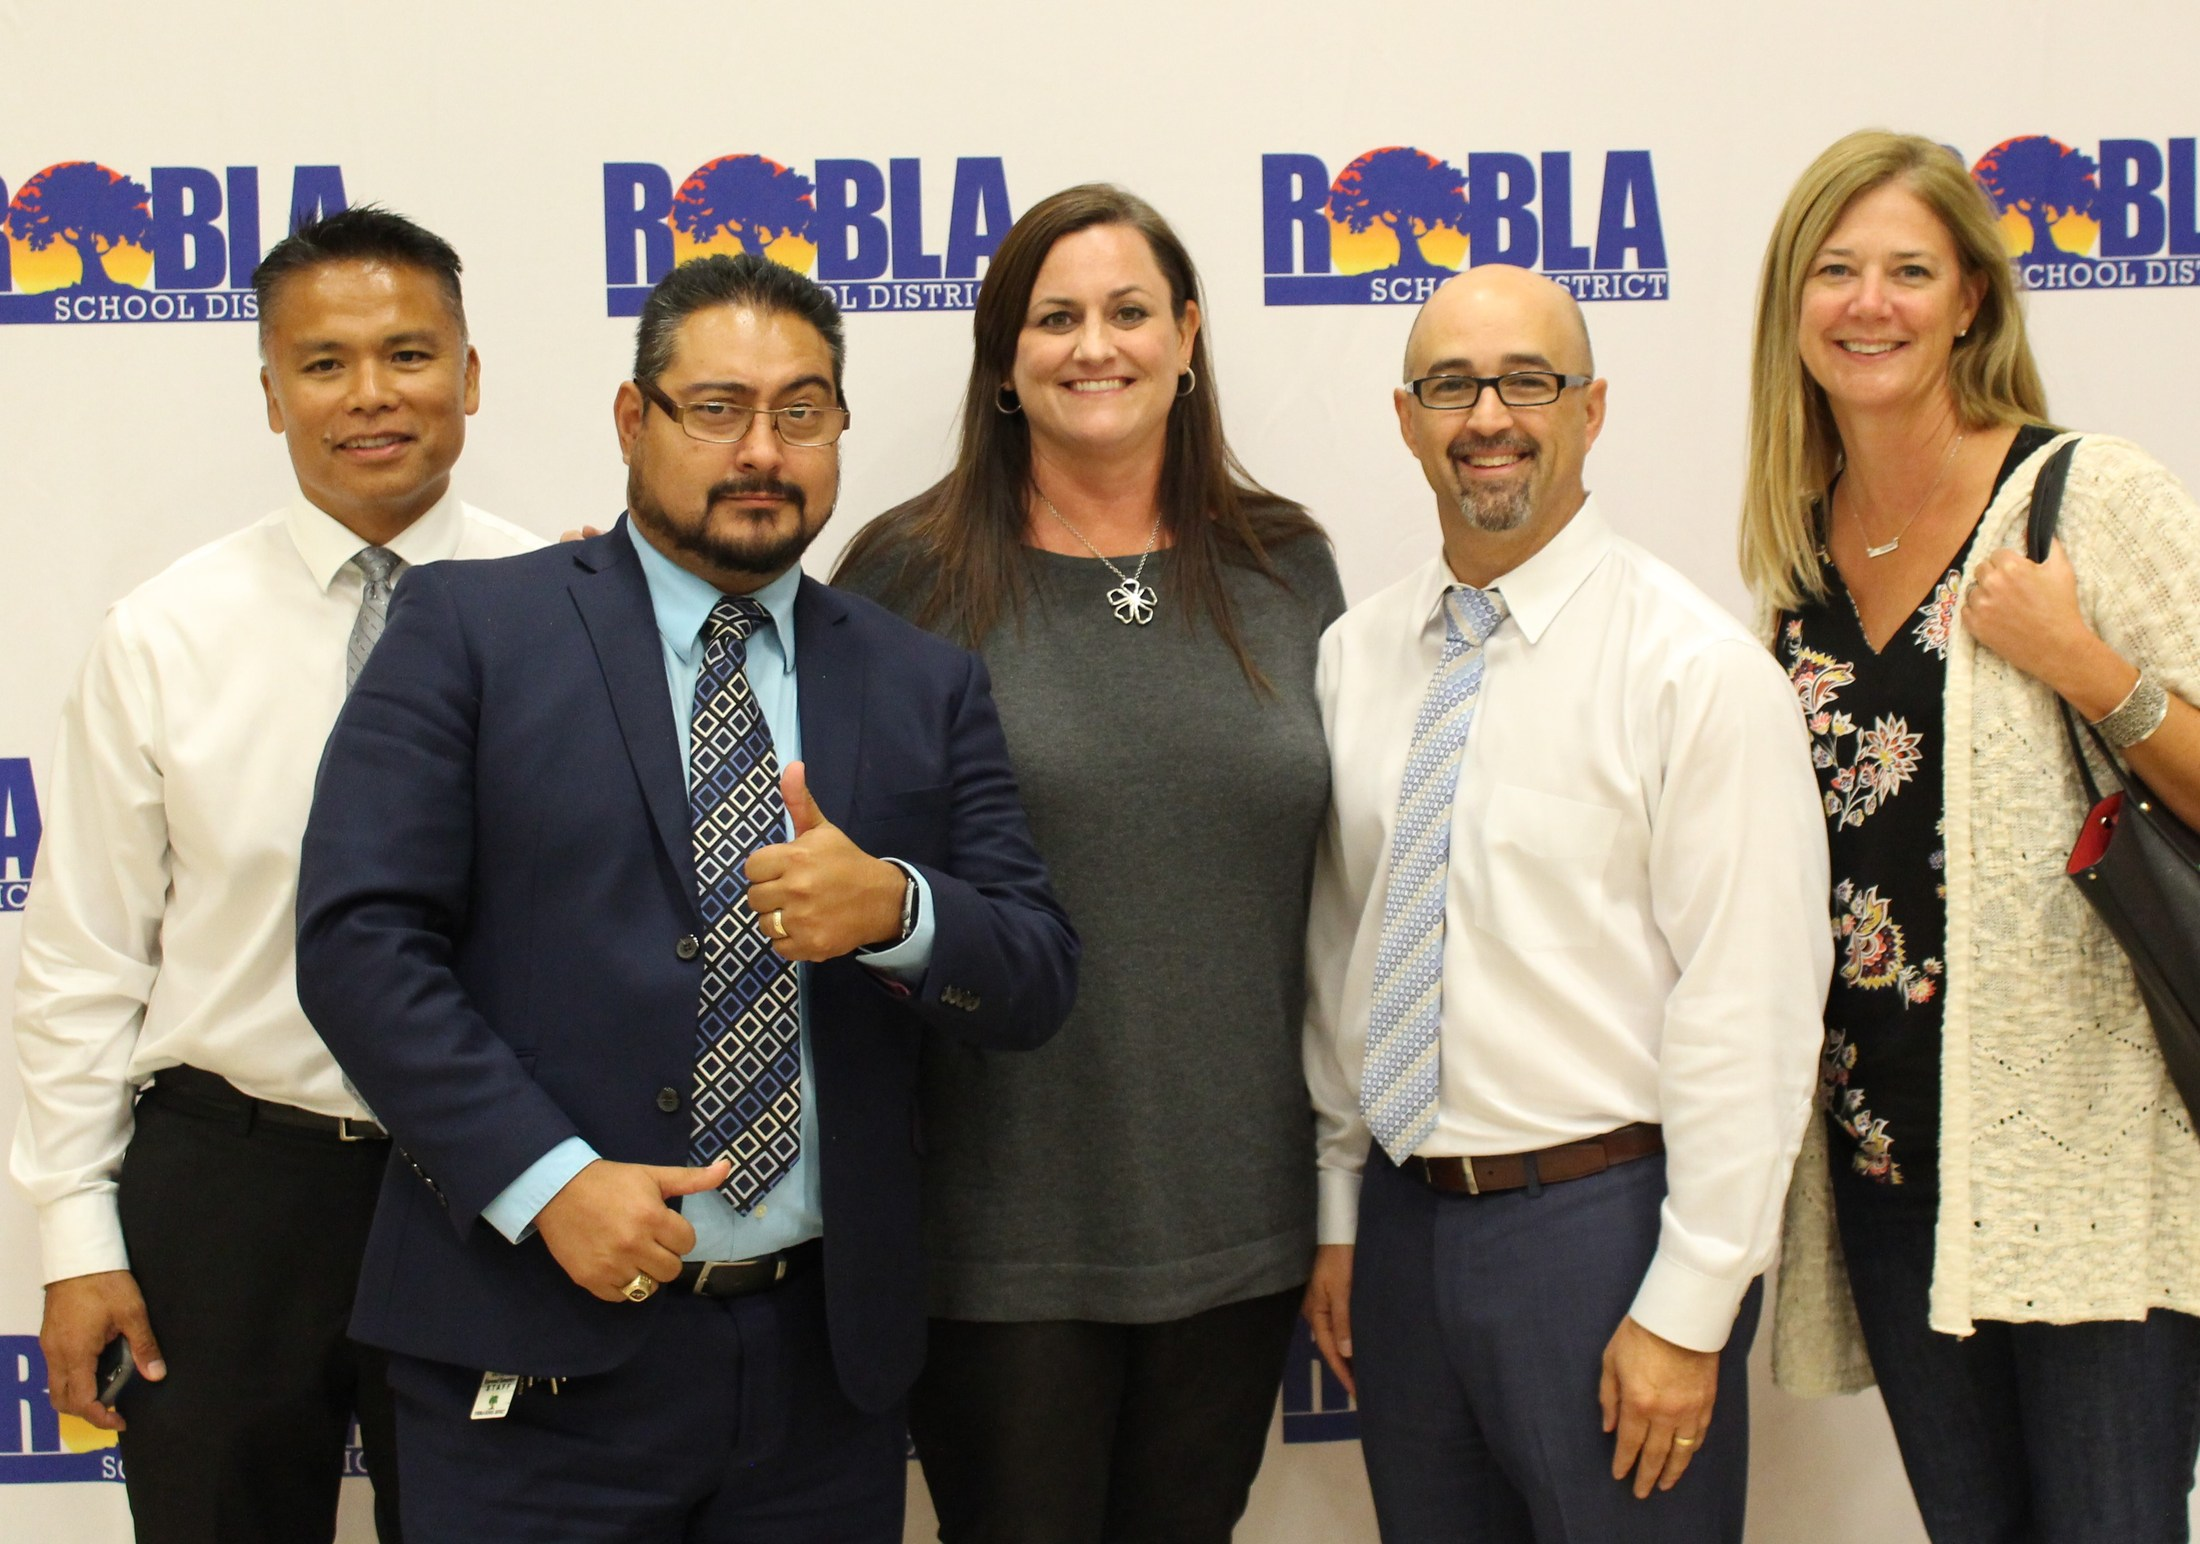 Robla School District Principals